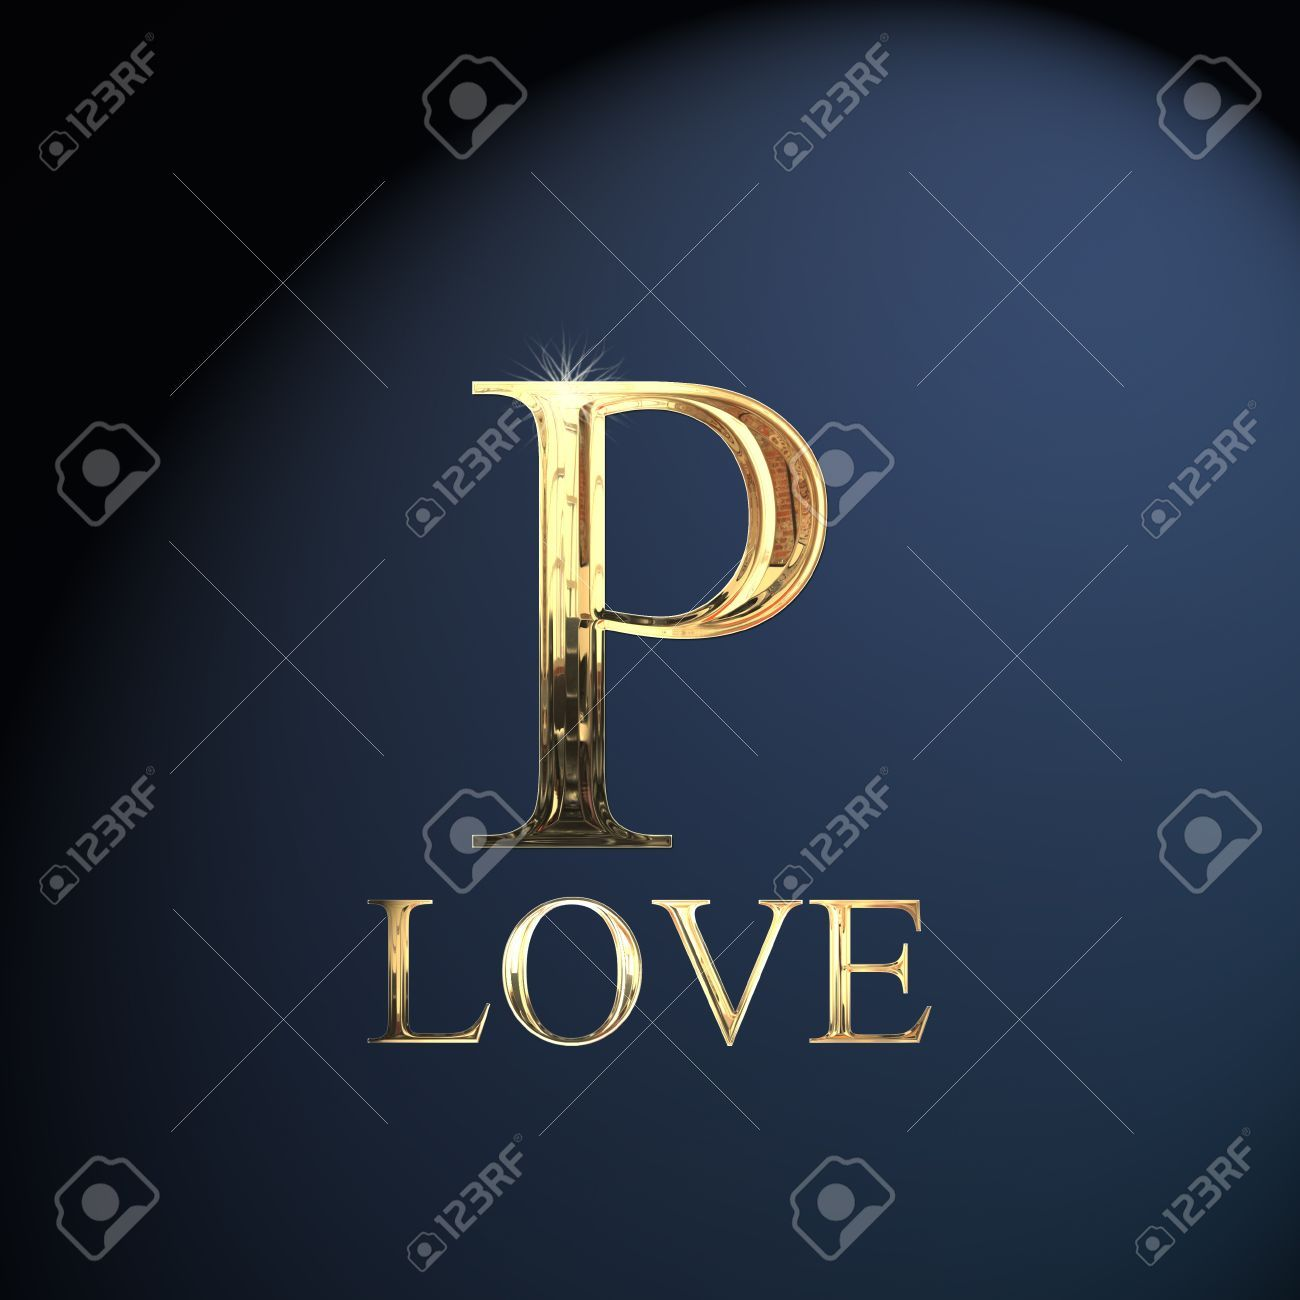 alphabet p - Samsung Corby Plus Wallpapers Download Free - Page 1 of 1 | All Wallpapers ...